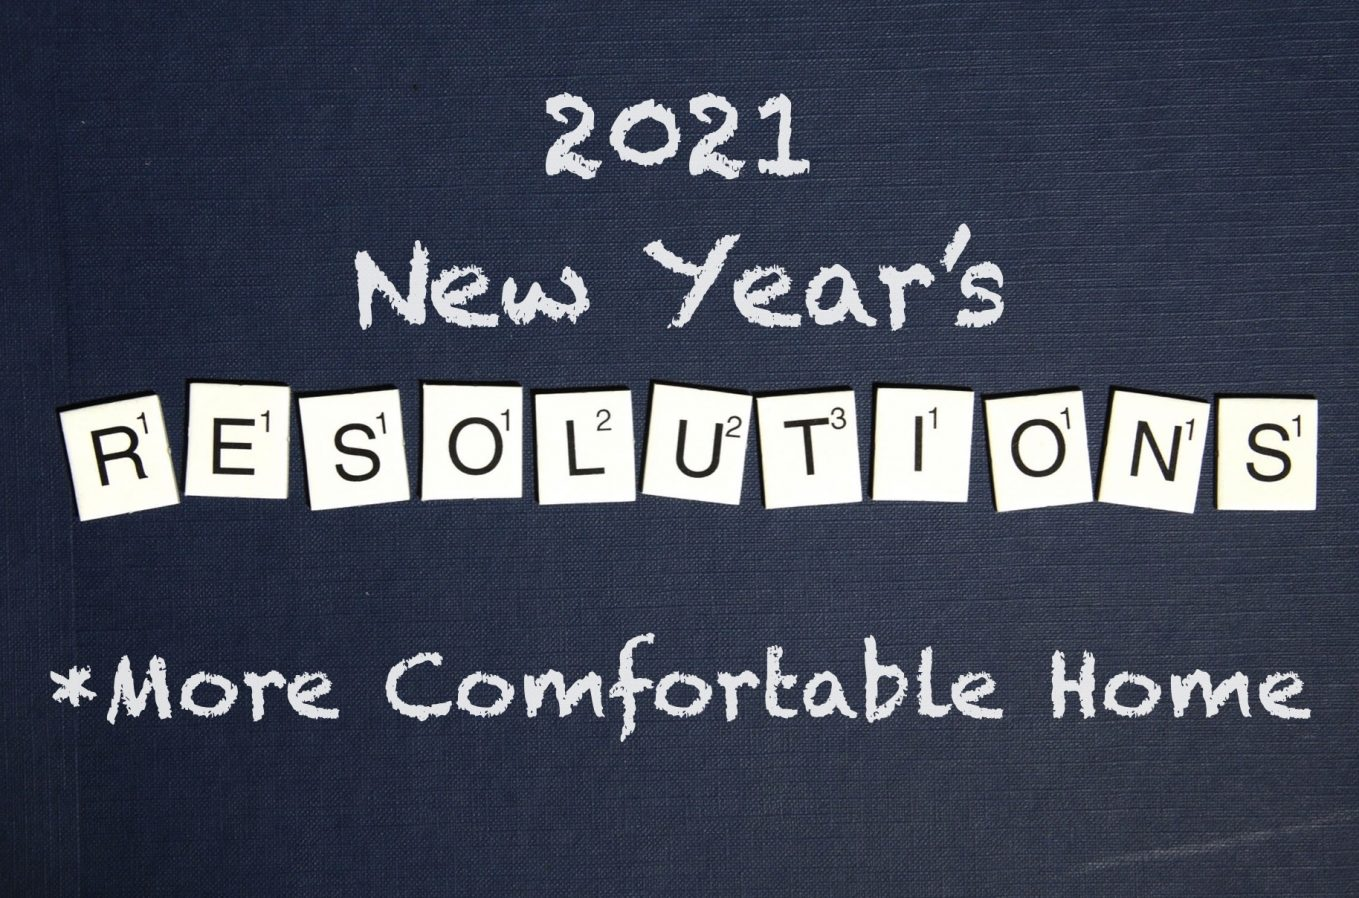 Resolve to Have a More Comfortable and Energy Efficient Home in 2021 - Home Window Tinting in Buffalo and Western, New York